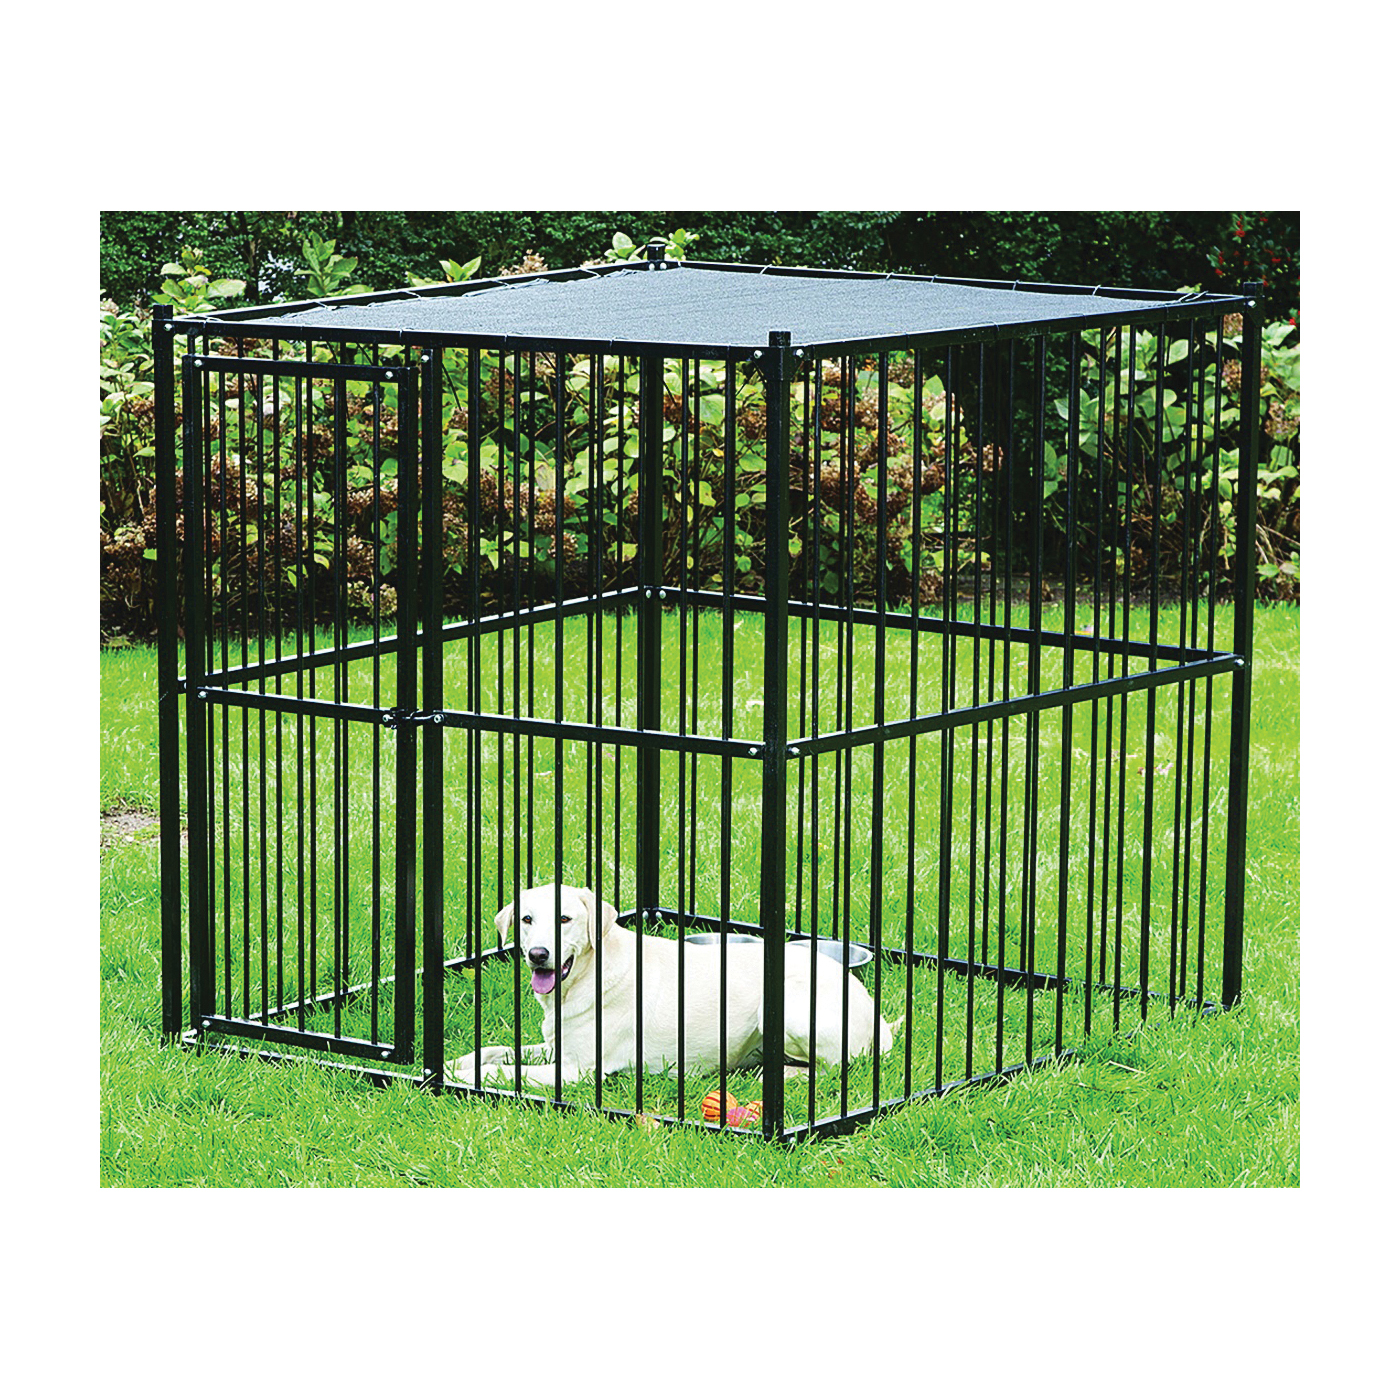 Picture of Stephens Pipe & Steel RSHBK11-13659 Dog Kennel with Sunblock Top, 5 ft OAL, 5 ft OAW, 5 ft OAH, Steel, Black